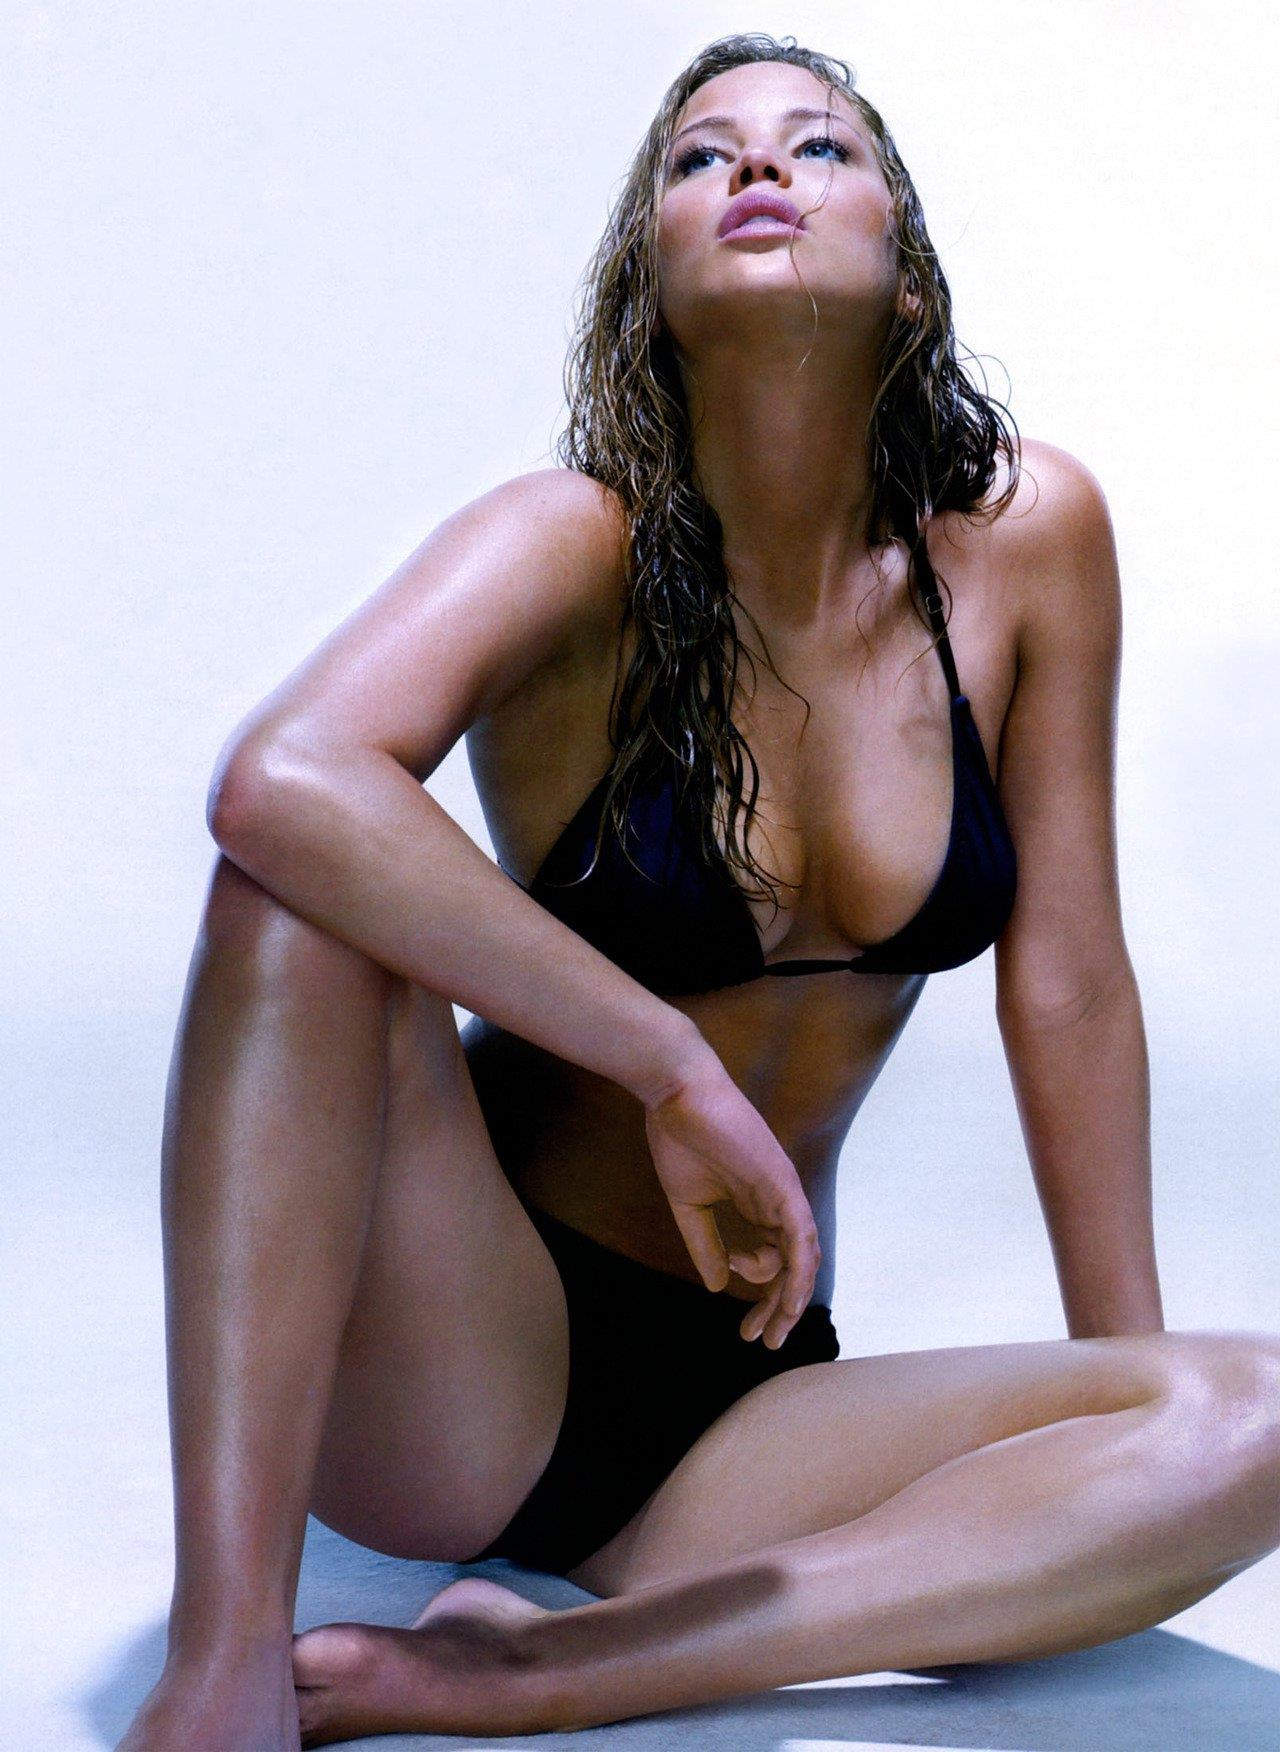 jennifer-lawrence-hot-pic-635668316637099918-11150.jpg